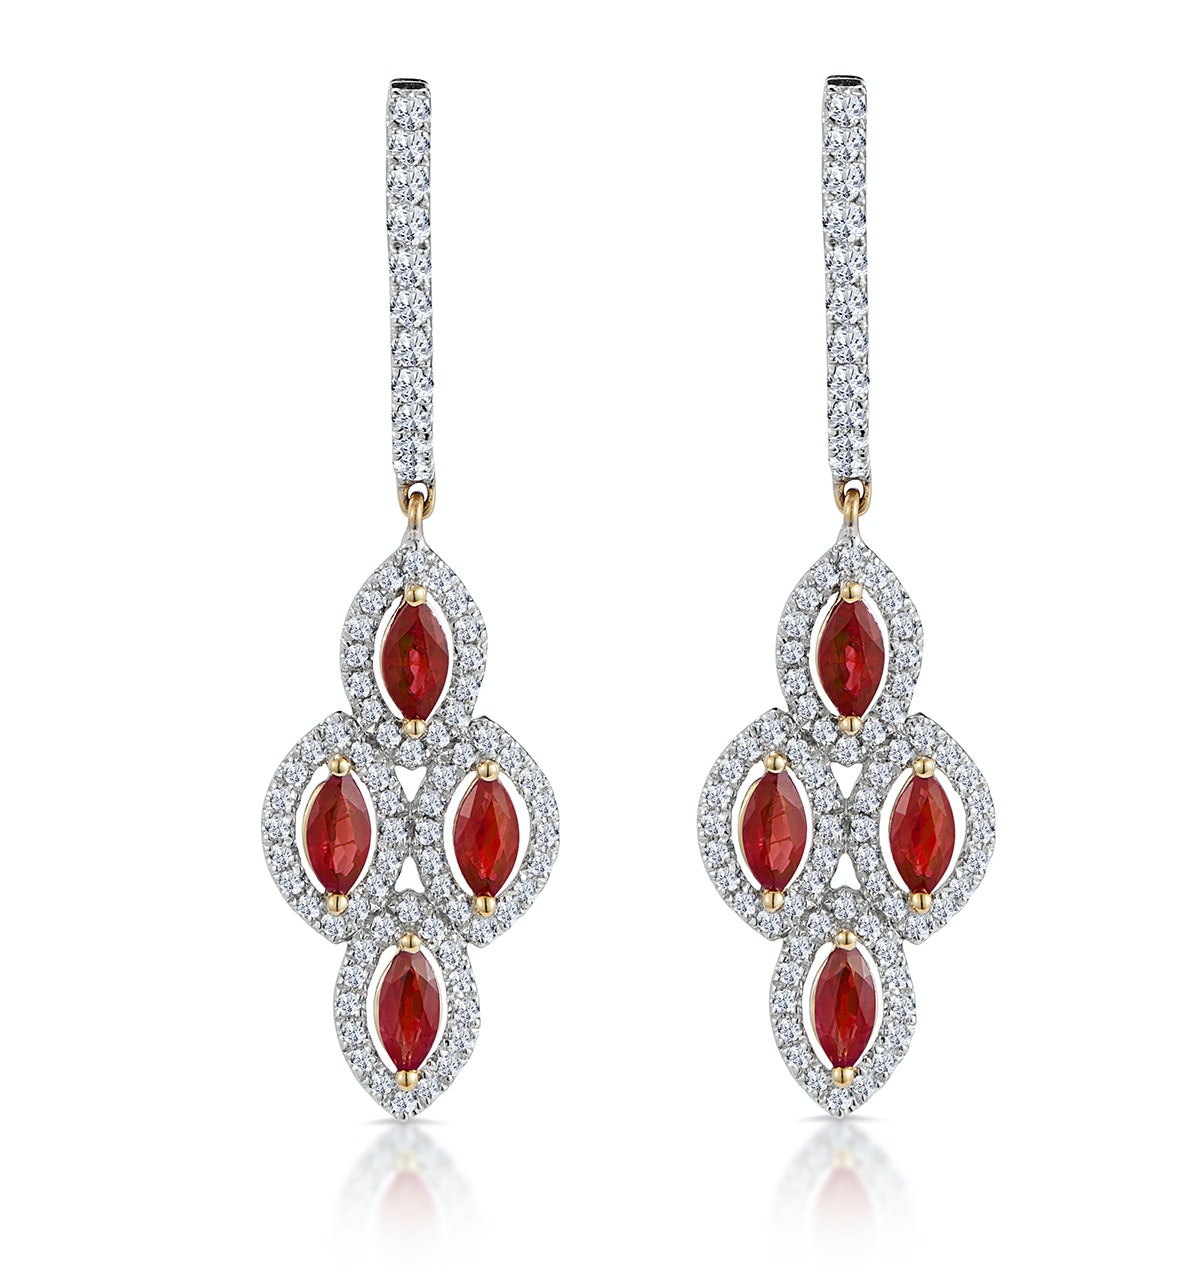 1.40ct Ruby Asteria Collection Diamond Drop Earrings in 18K Gold